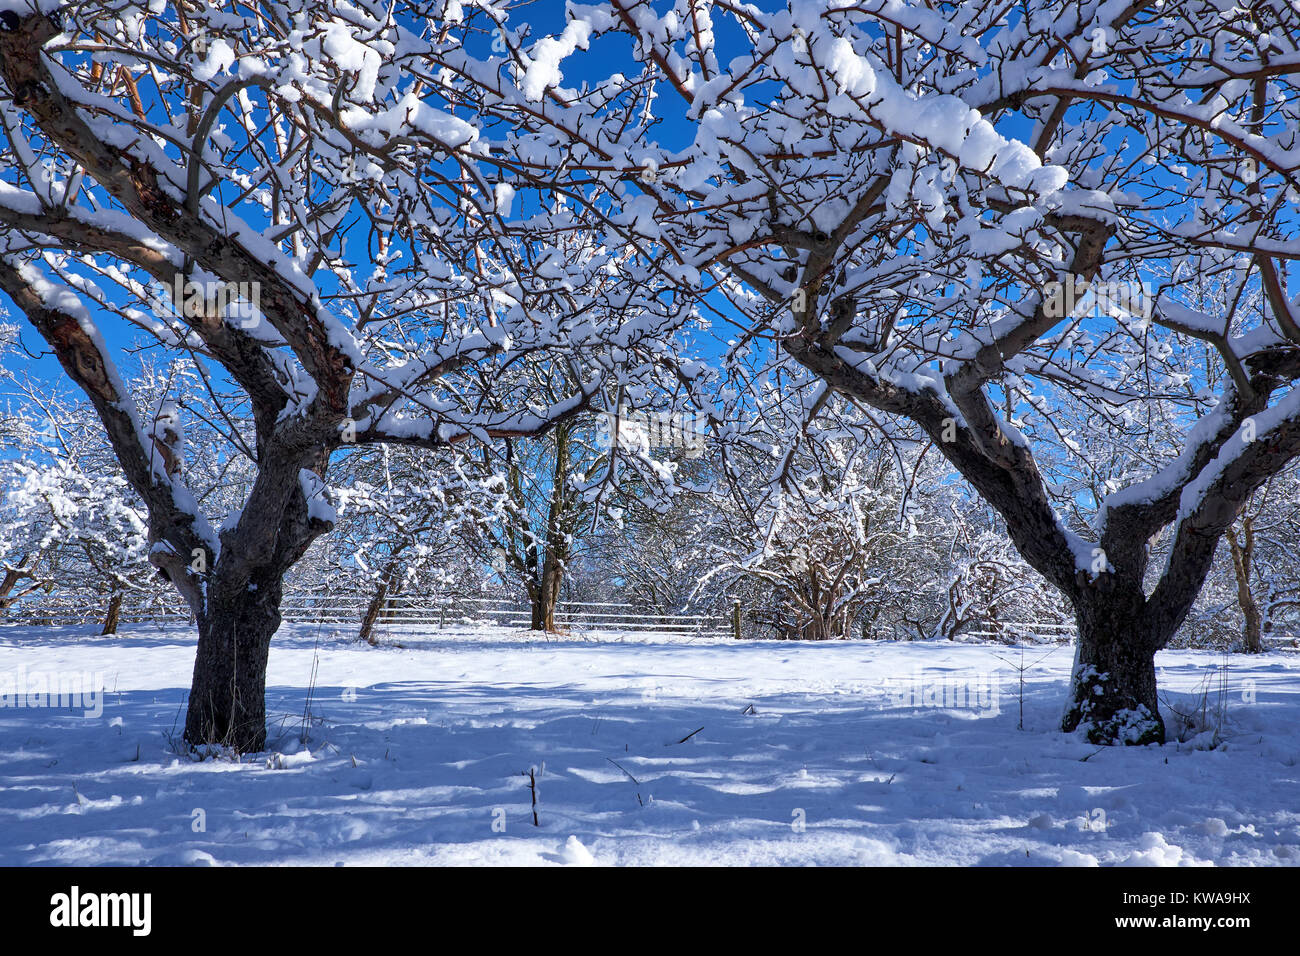 Two apple trees covered in newly fallen snow on a sunny winter day in Denmark - Stock Image